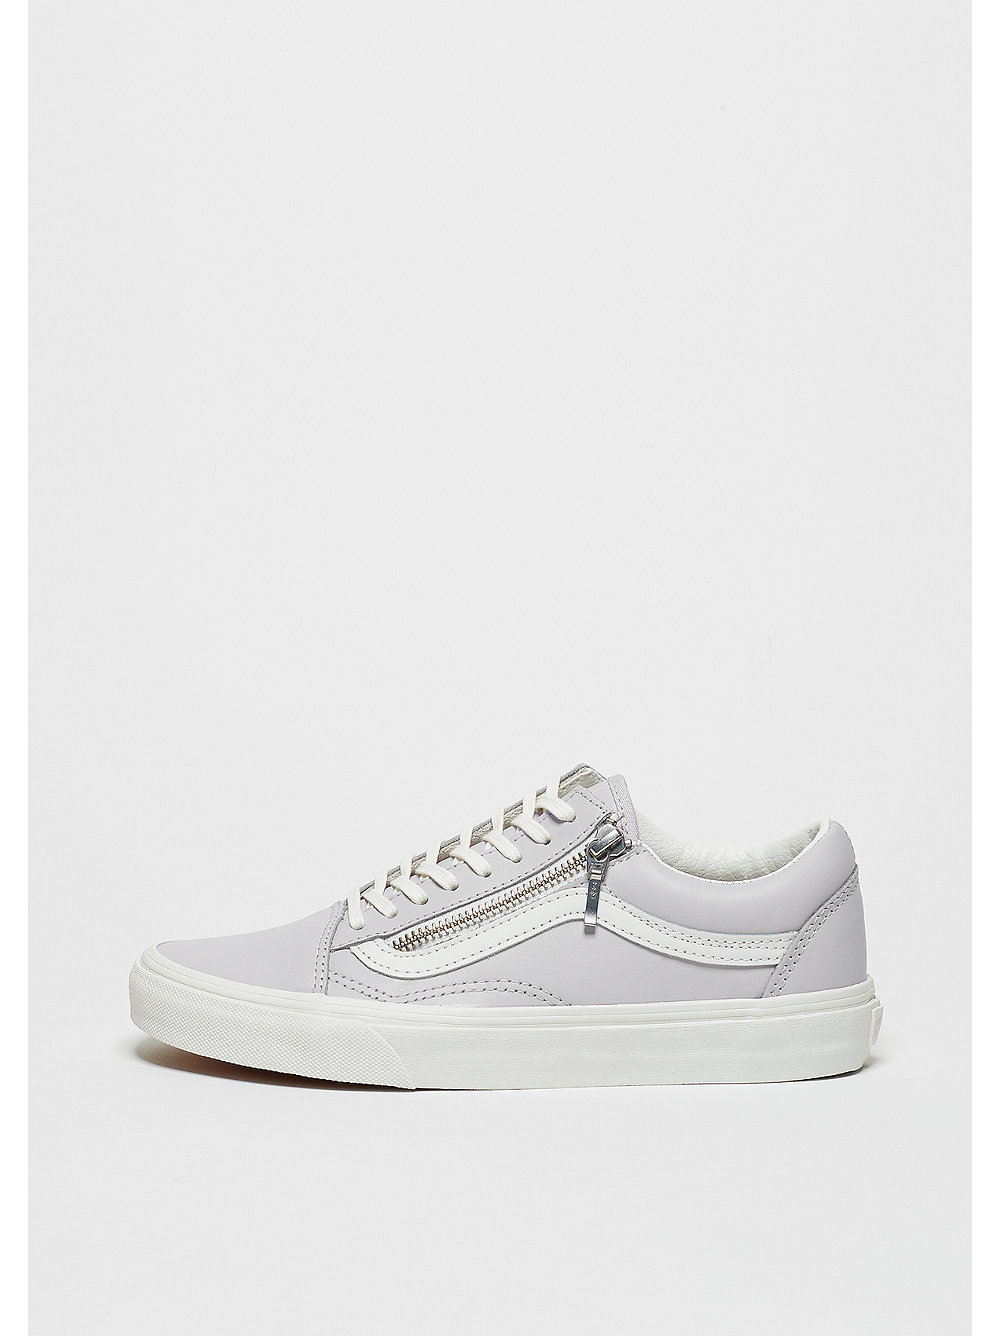 vans old skool zip 39